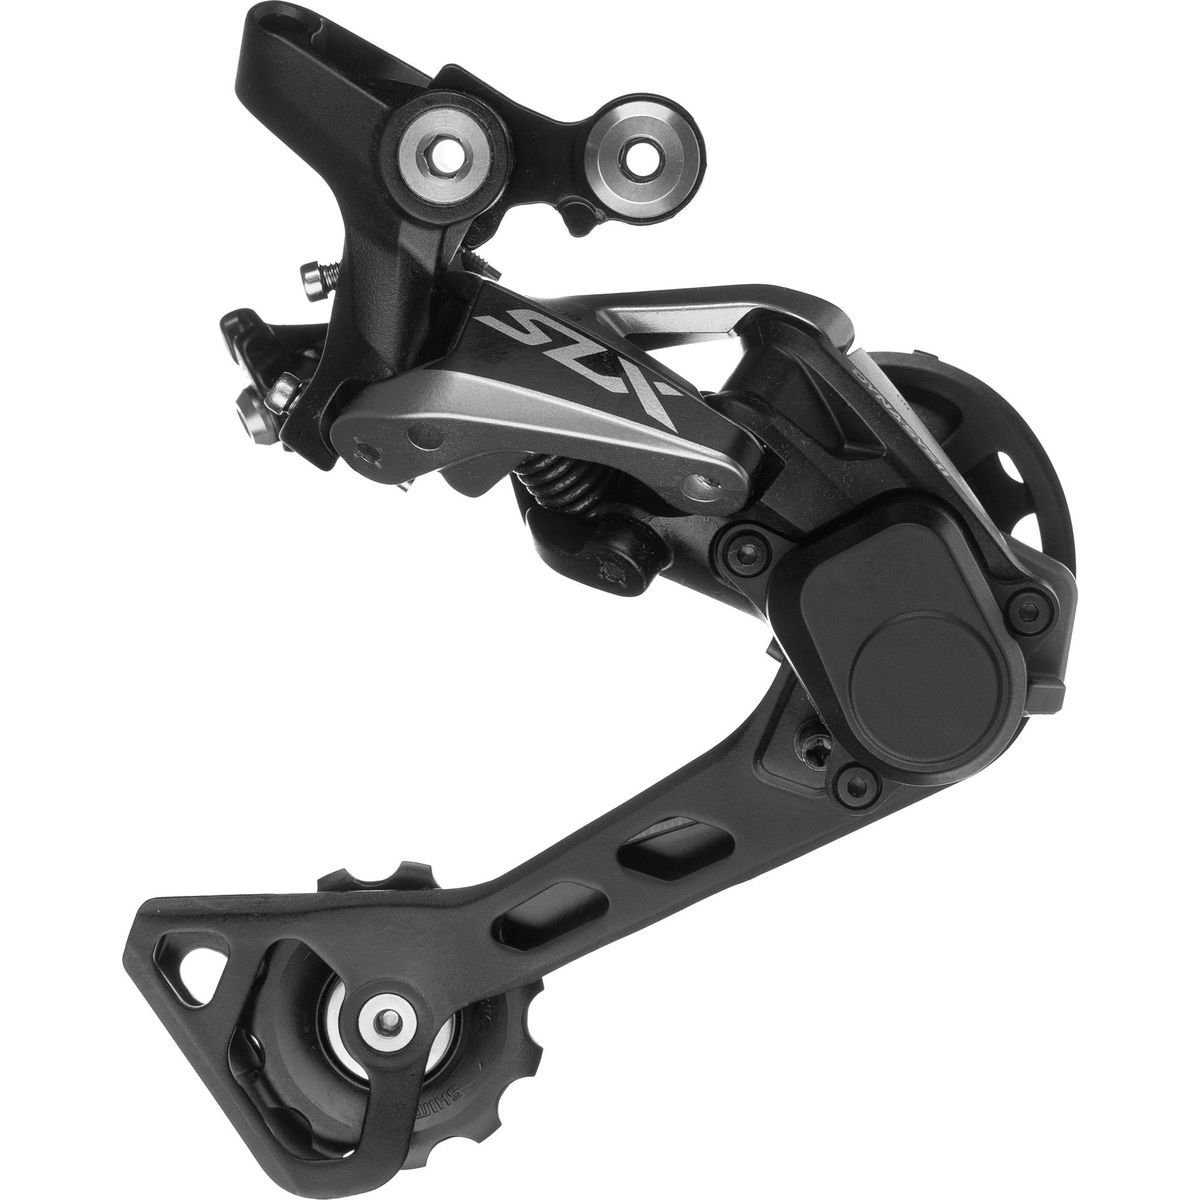 SHIMANO SLX RD-M7000 Rear Derailleur One Color, Medium Cage